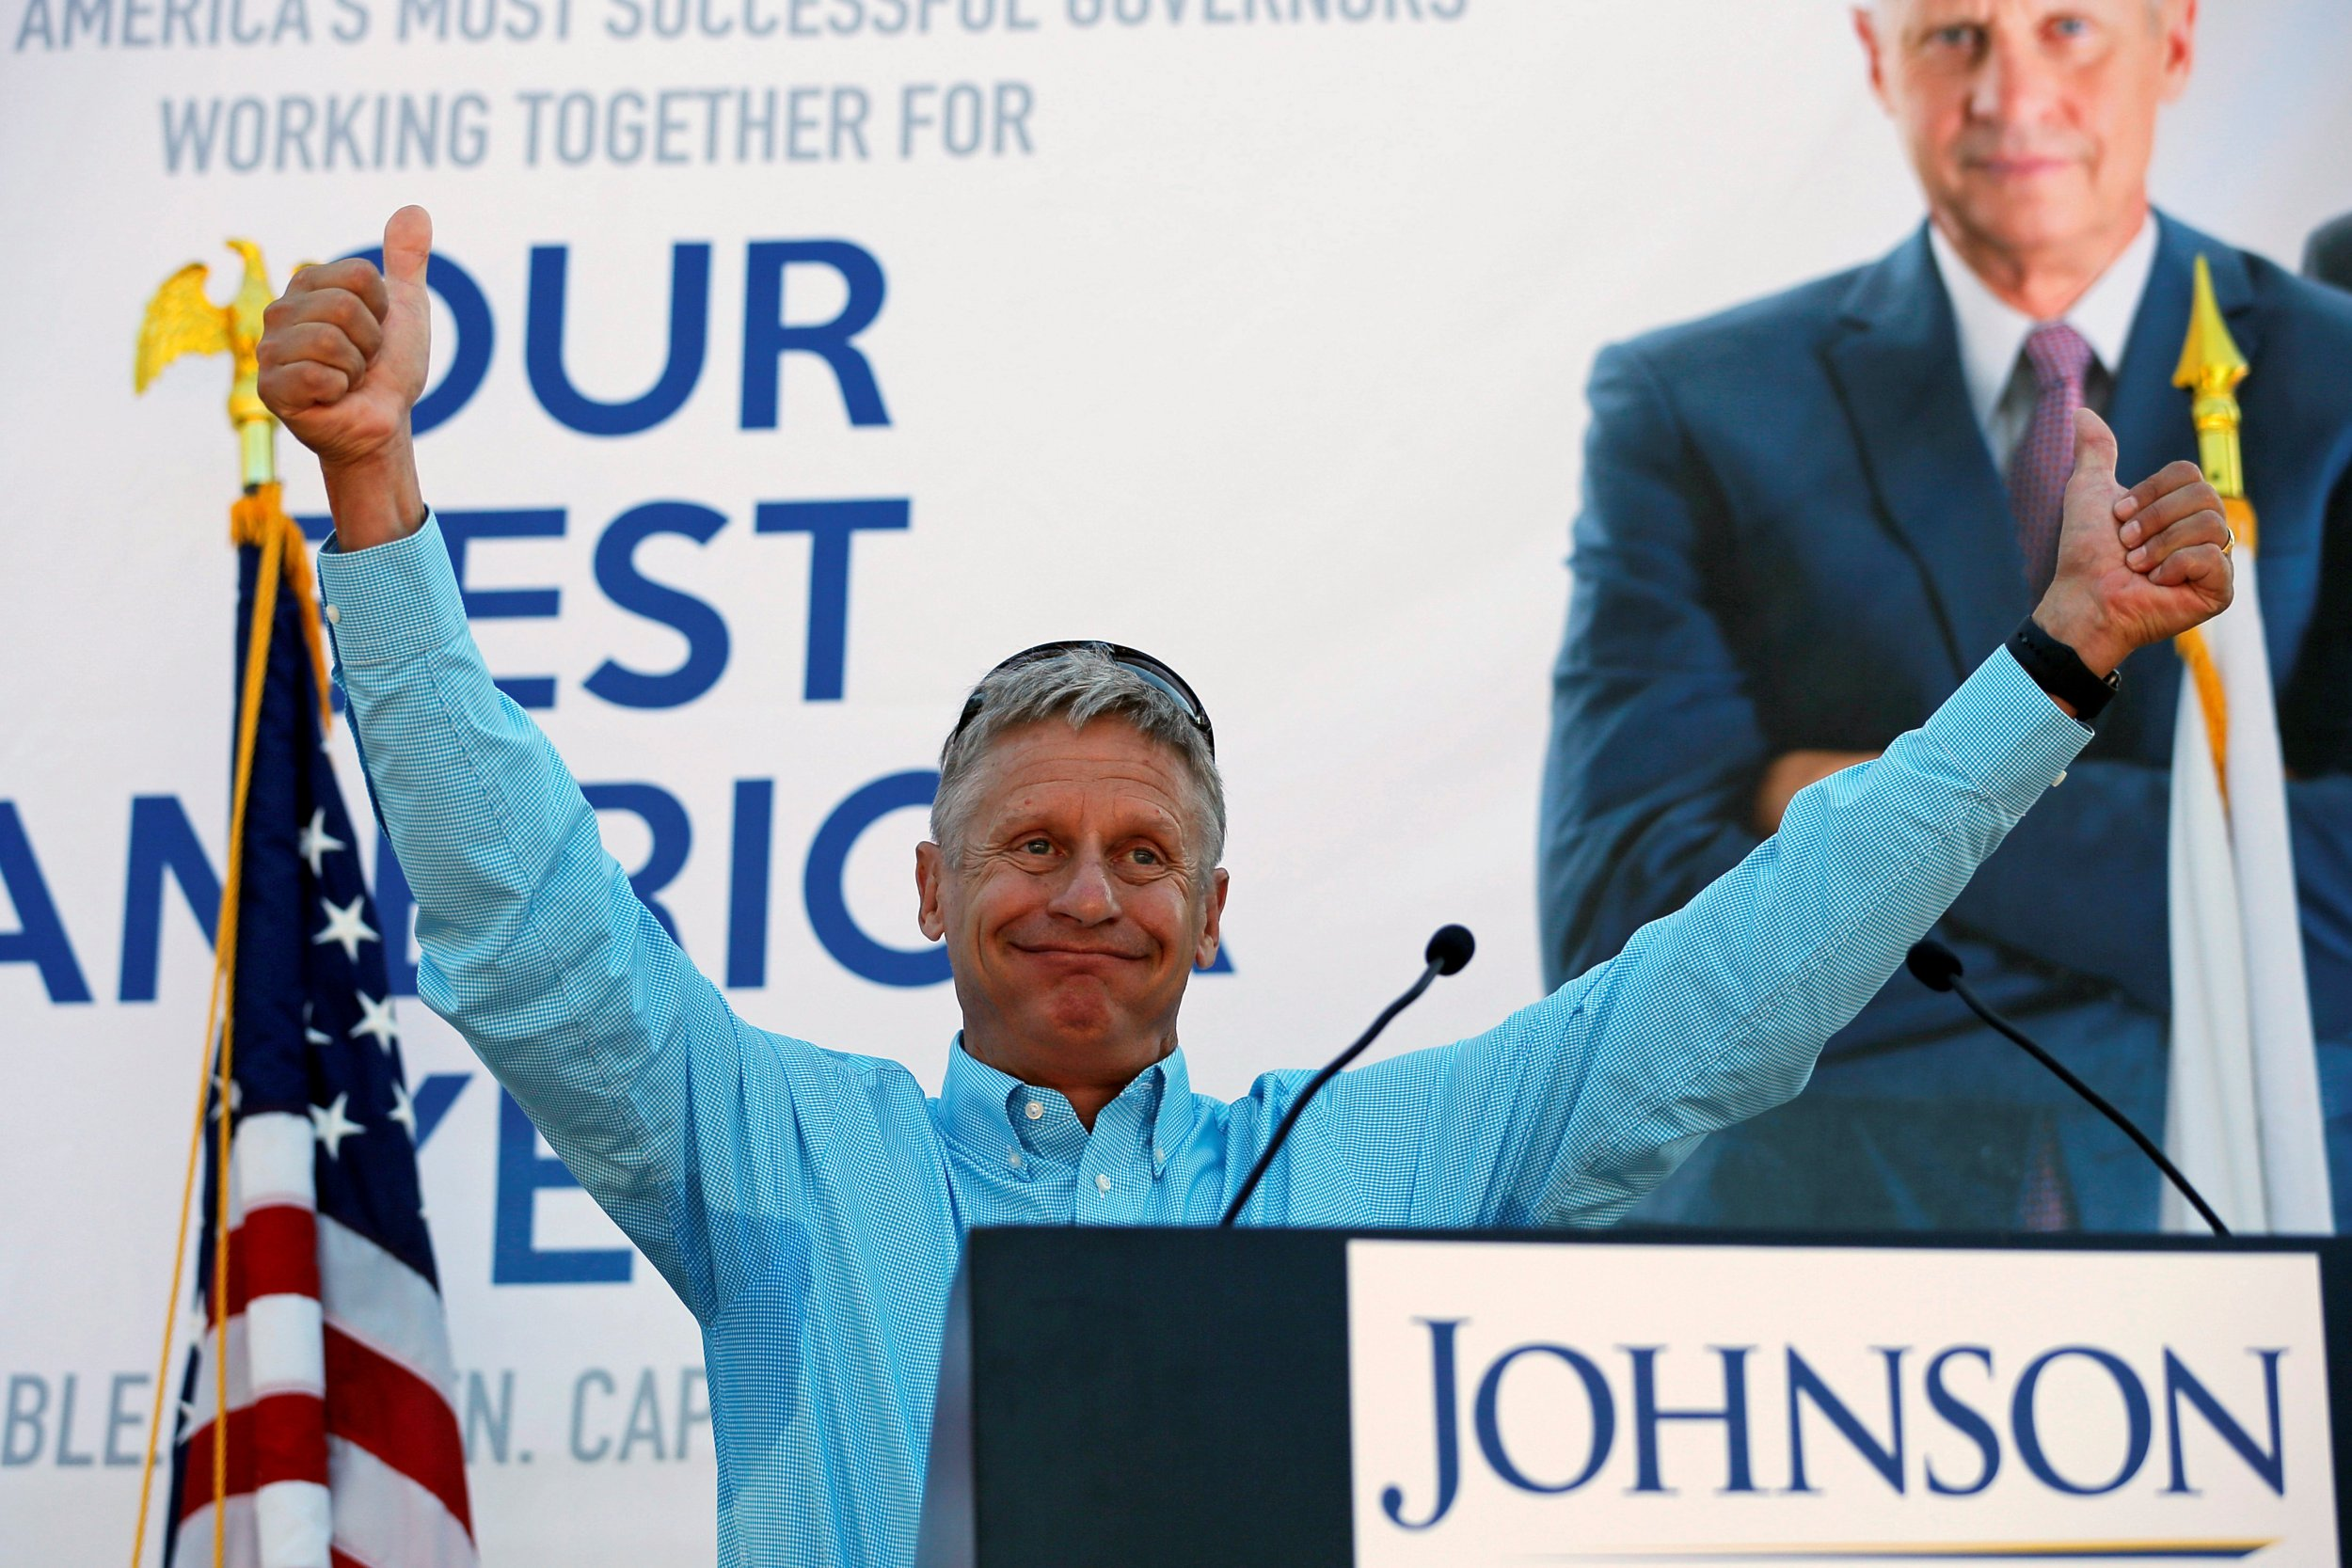 0921_Gary_Johnson_president_election_01